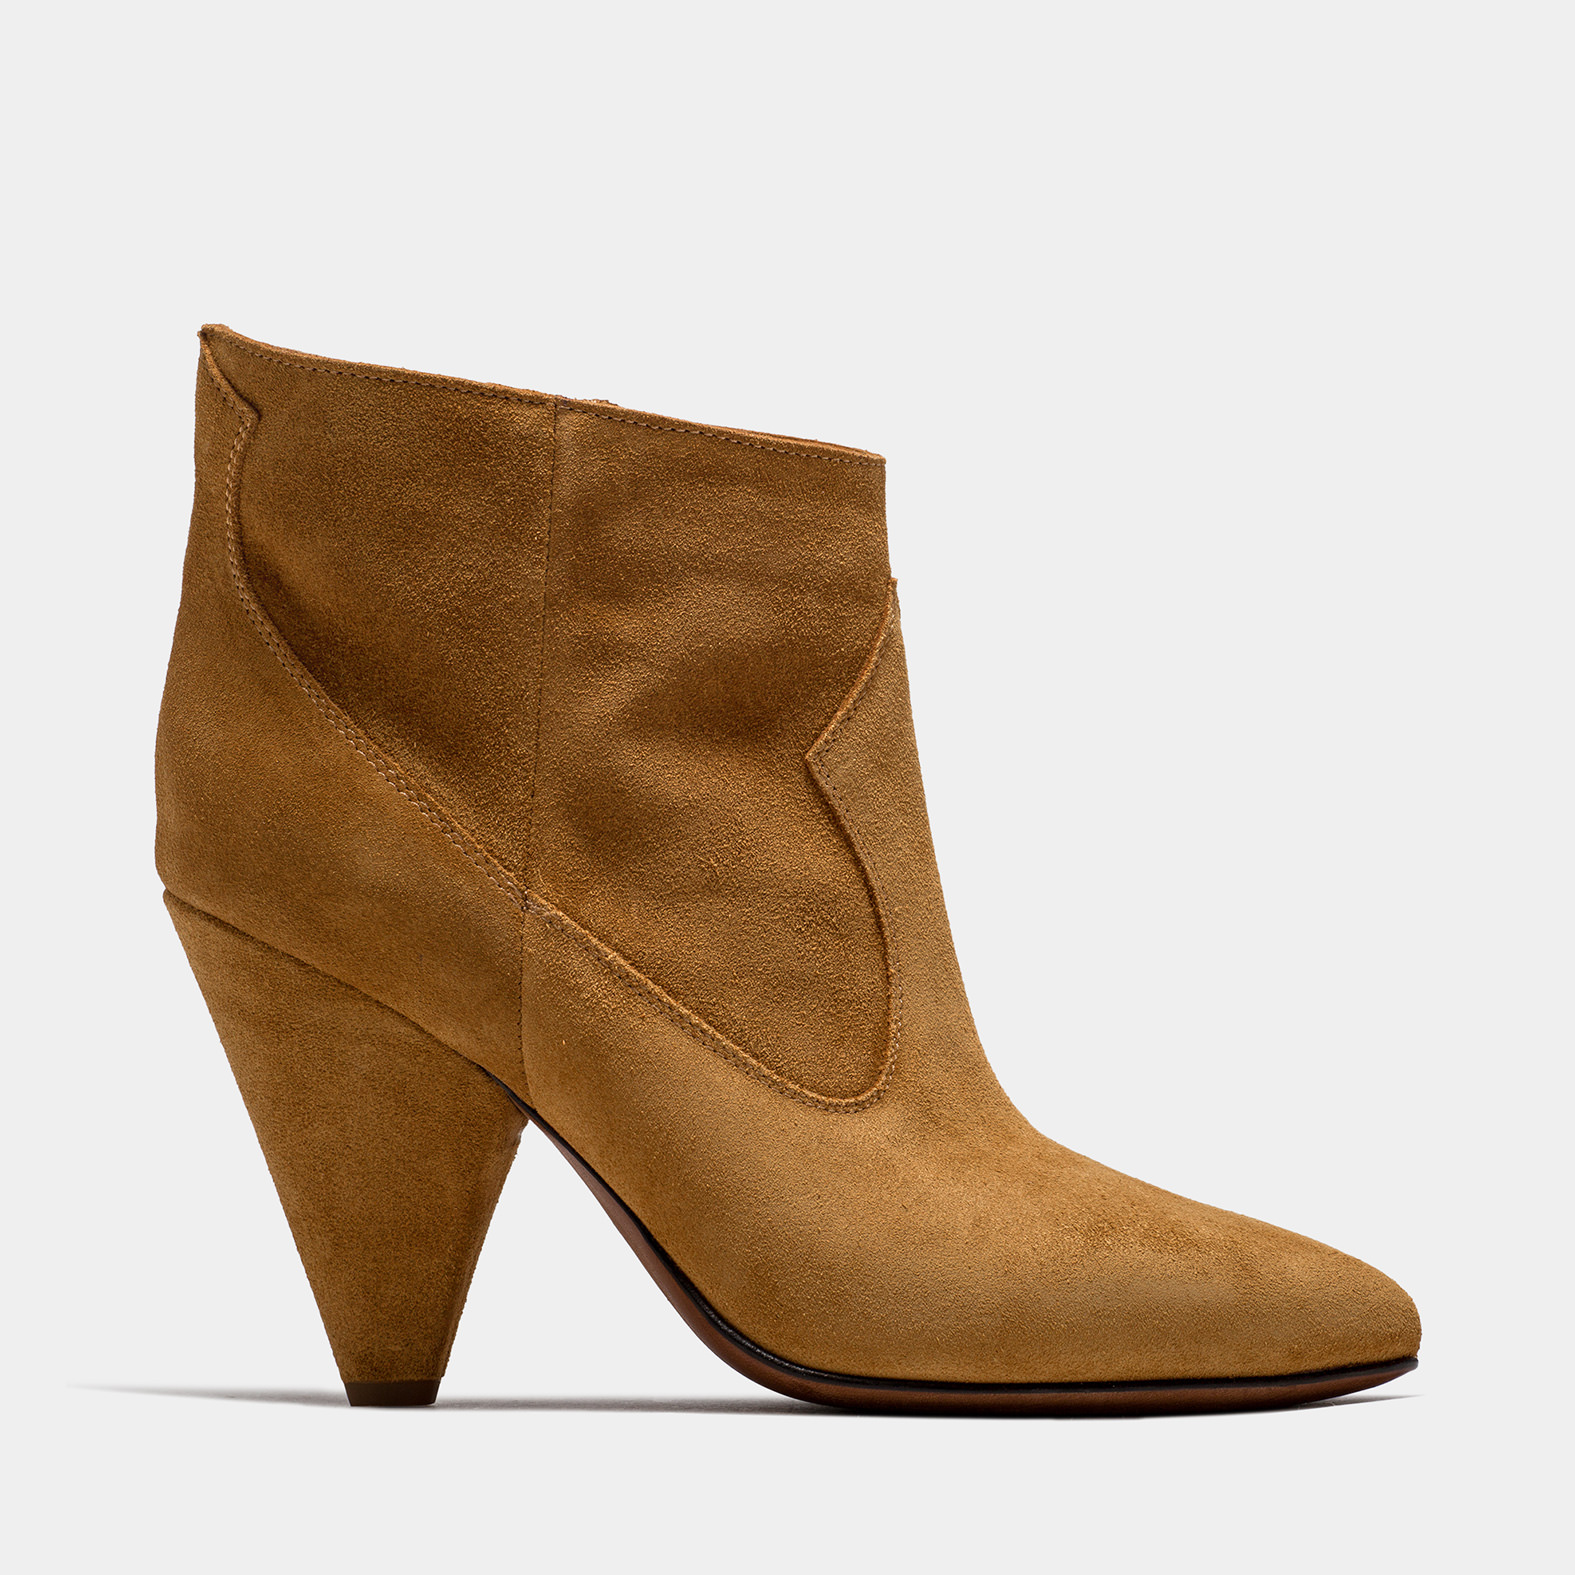 BUTTERO: COPPER SUEDE ROSE LOW TOP BOOTS